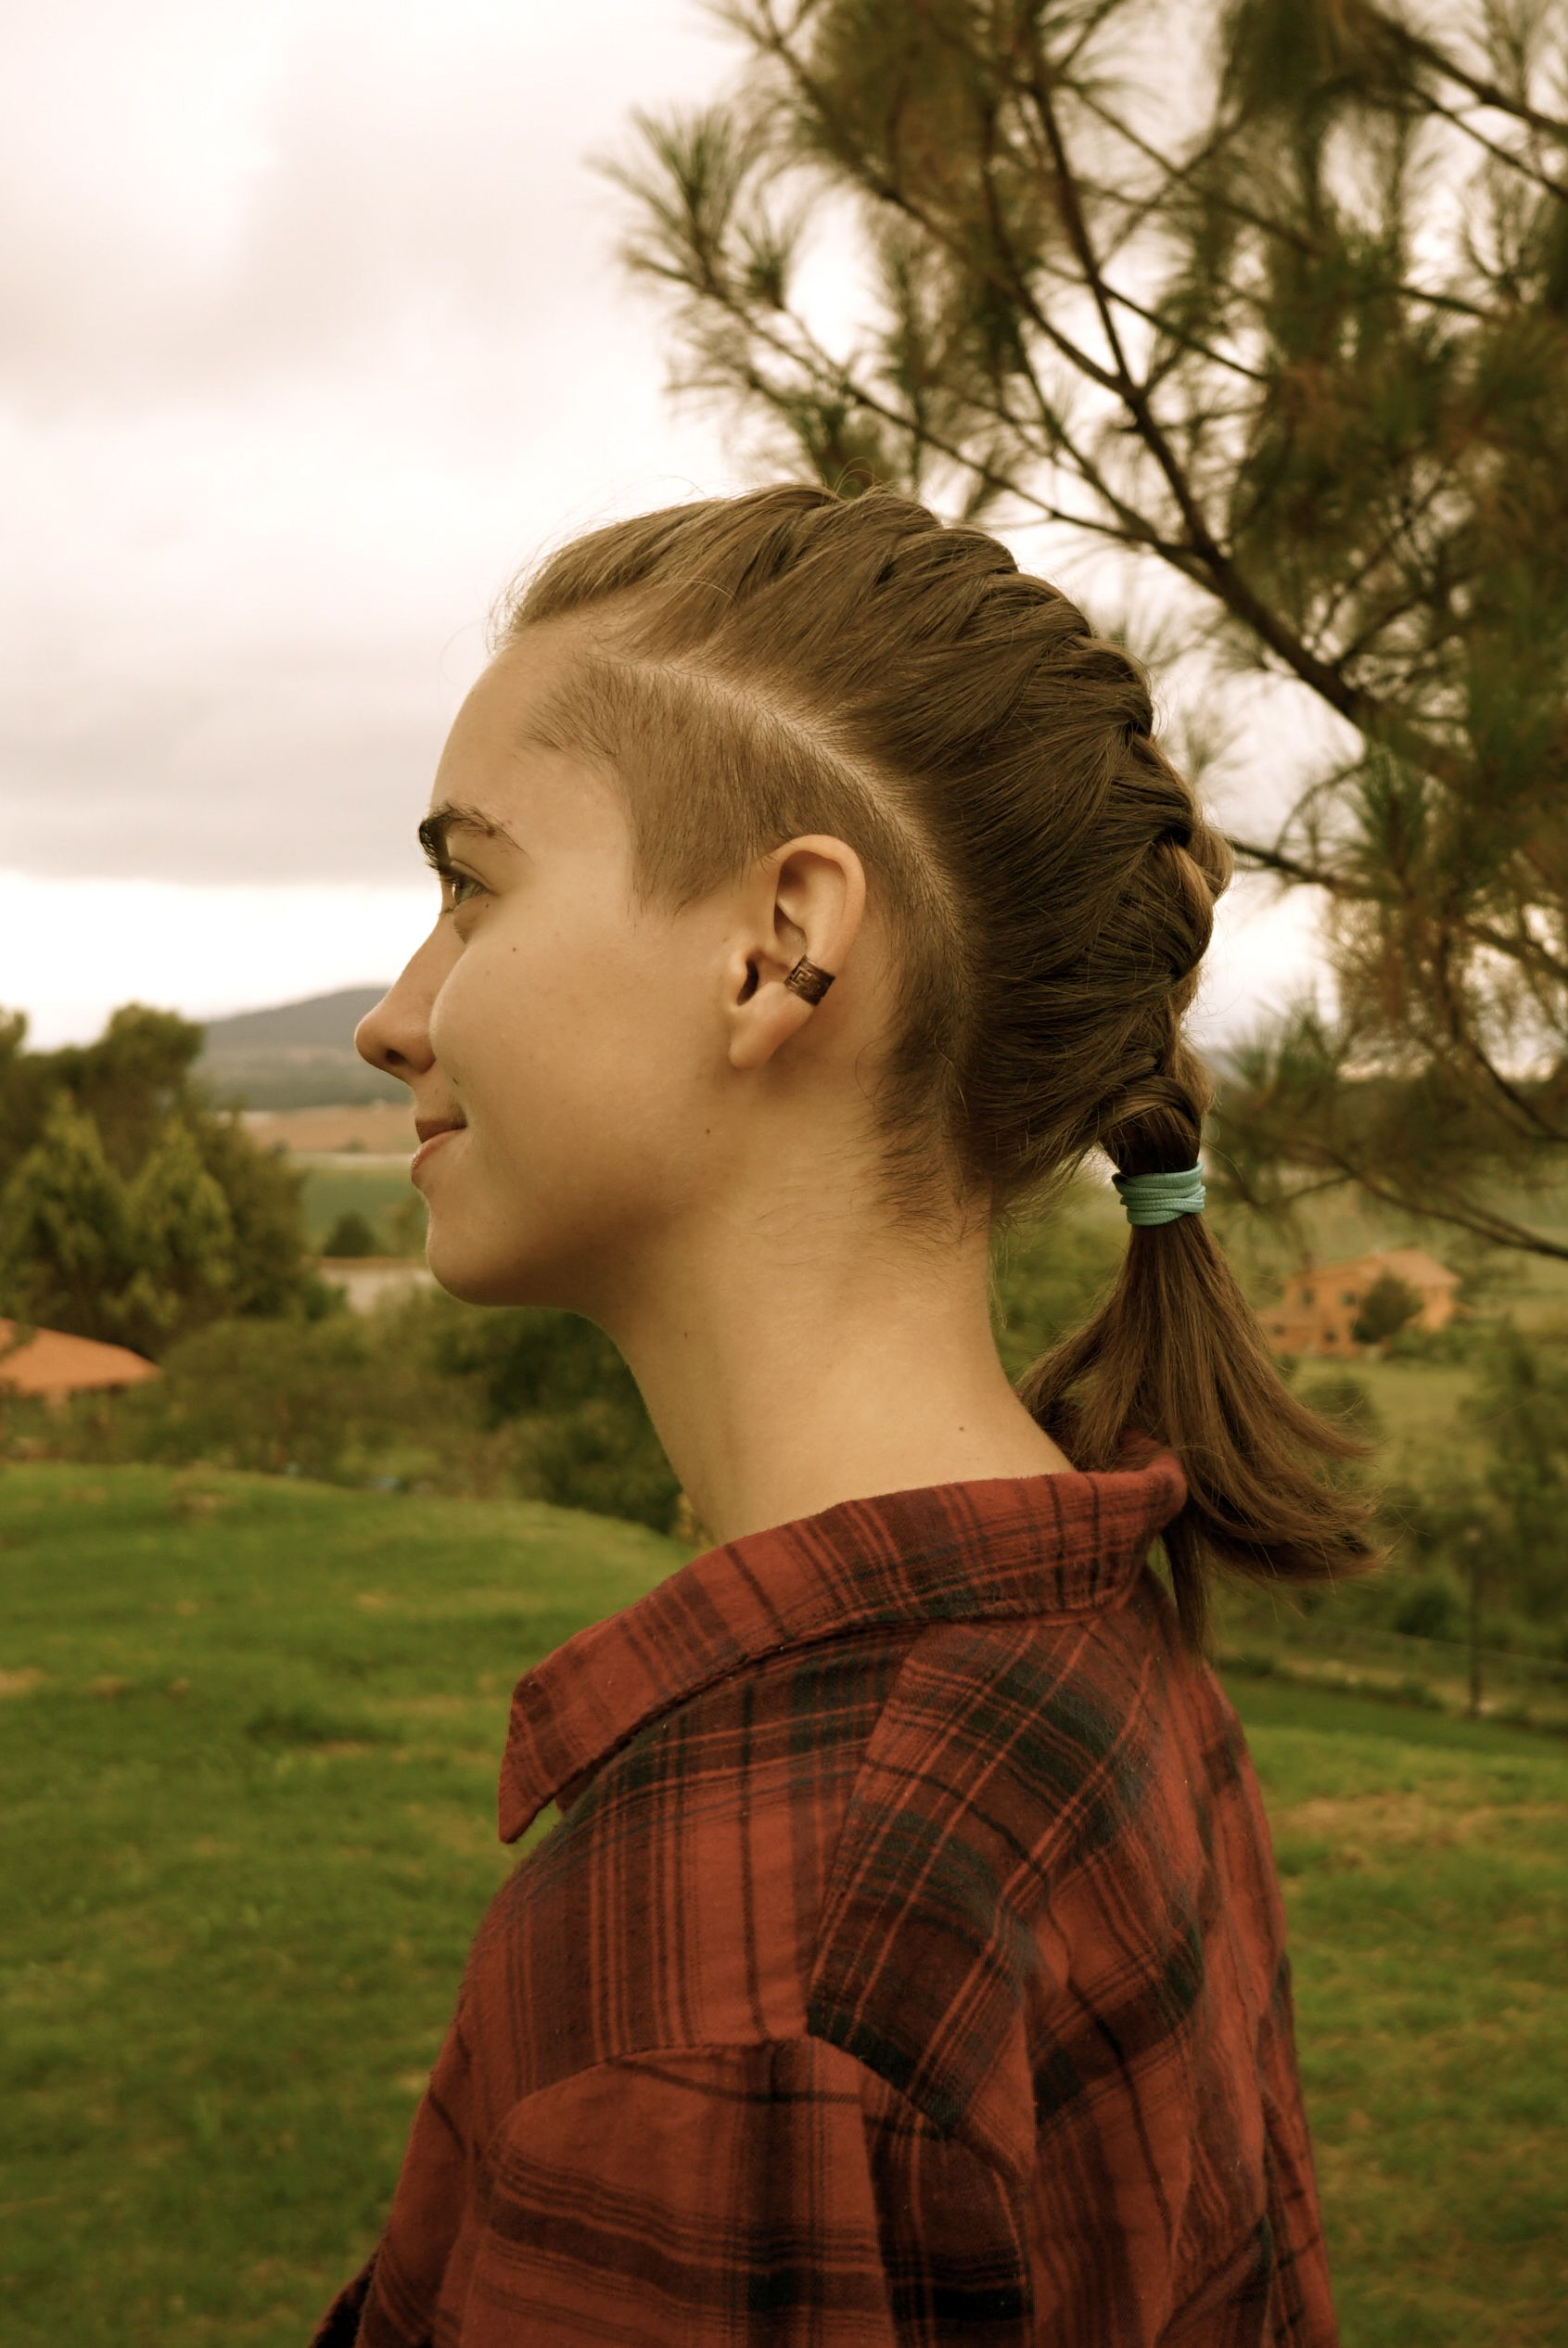 women\u0027s hair, sidecut, undercut, shaved head, sides, woman